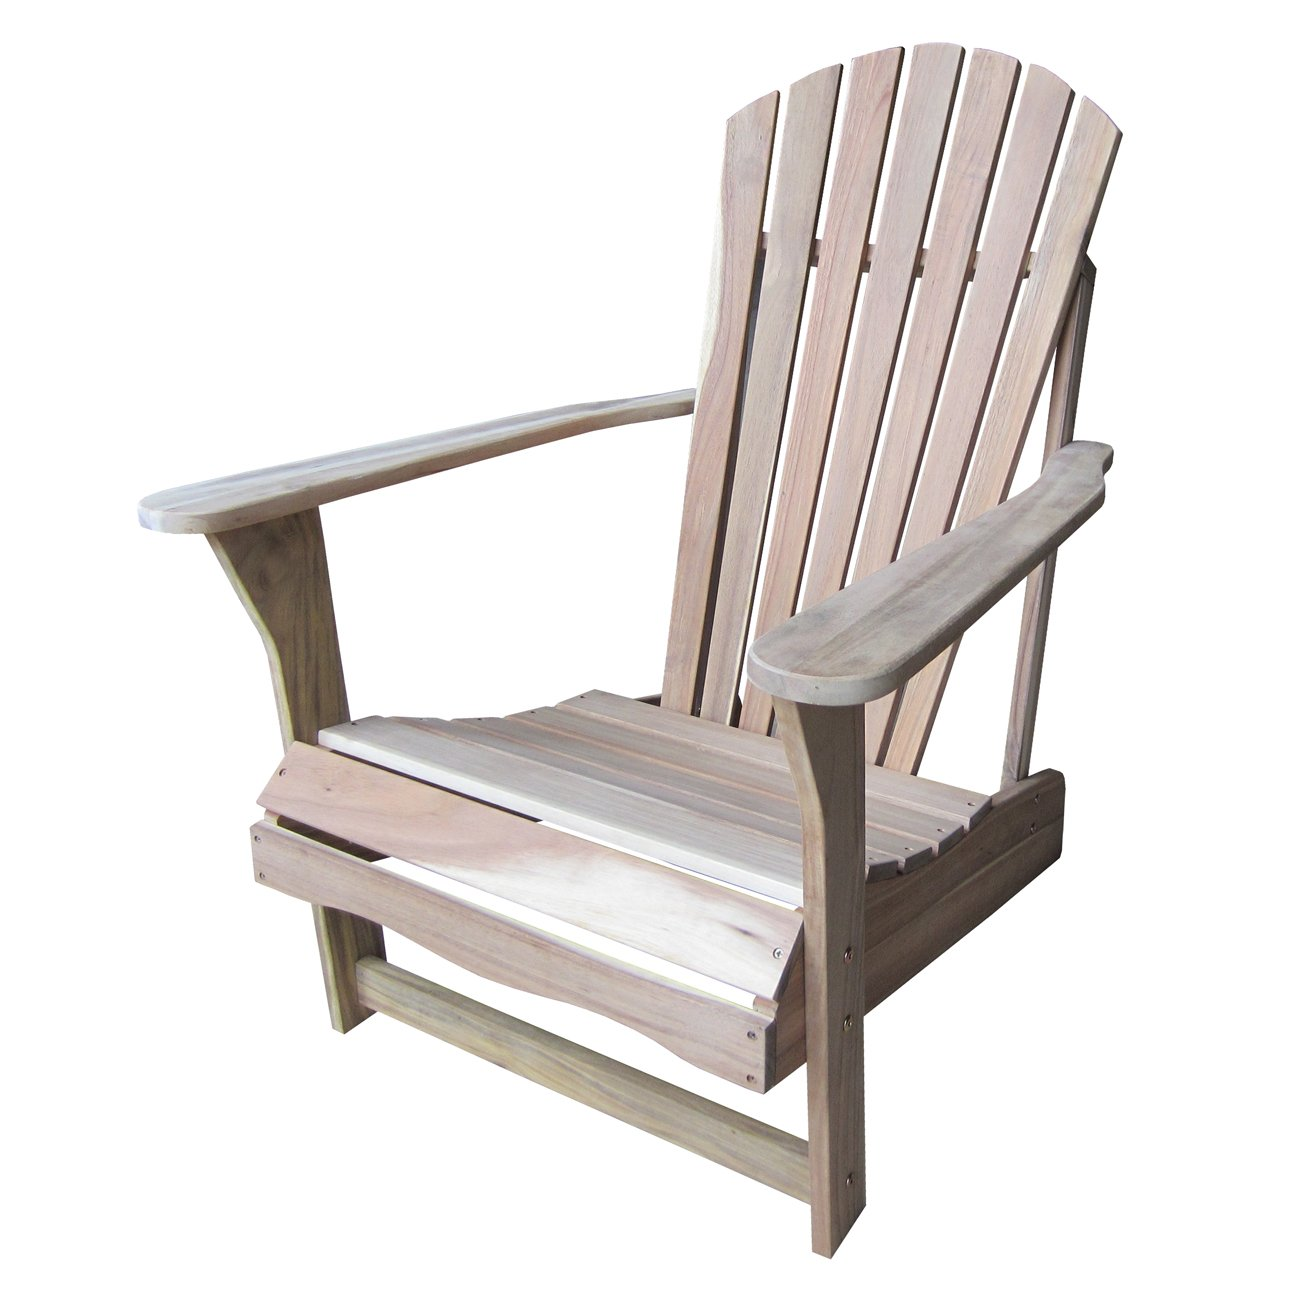 Amazon.com: International Concepts Adirondack Chair, Unfinished: Kitchen U0026  Dining